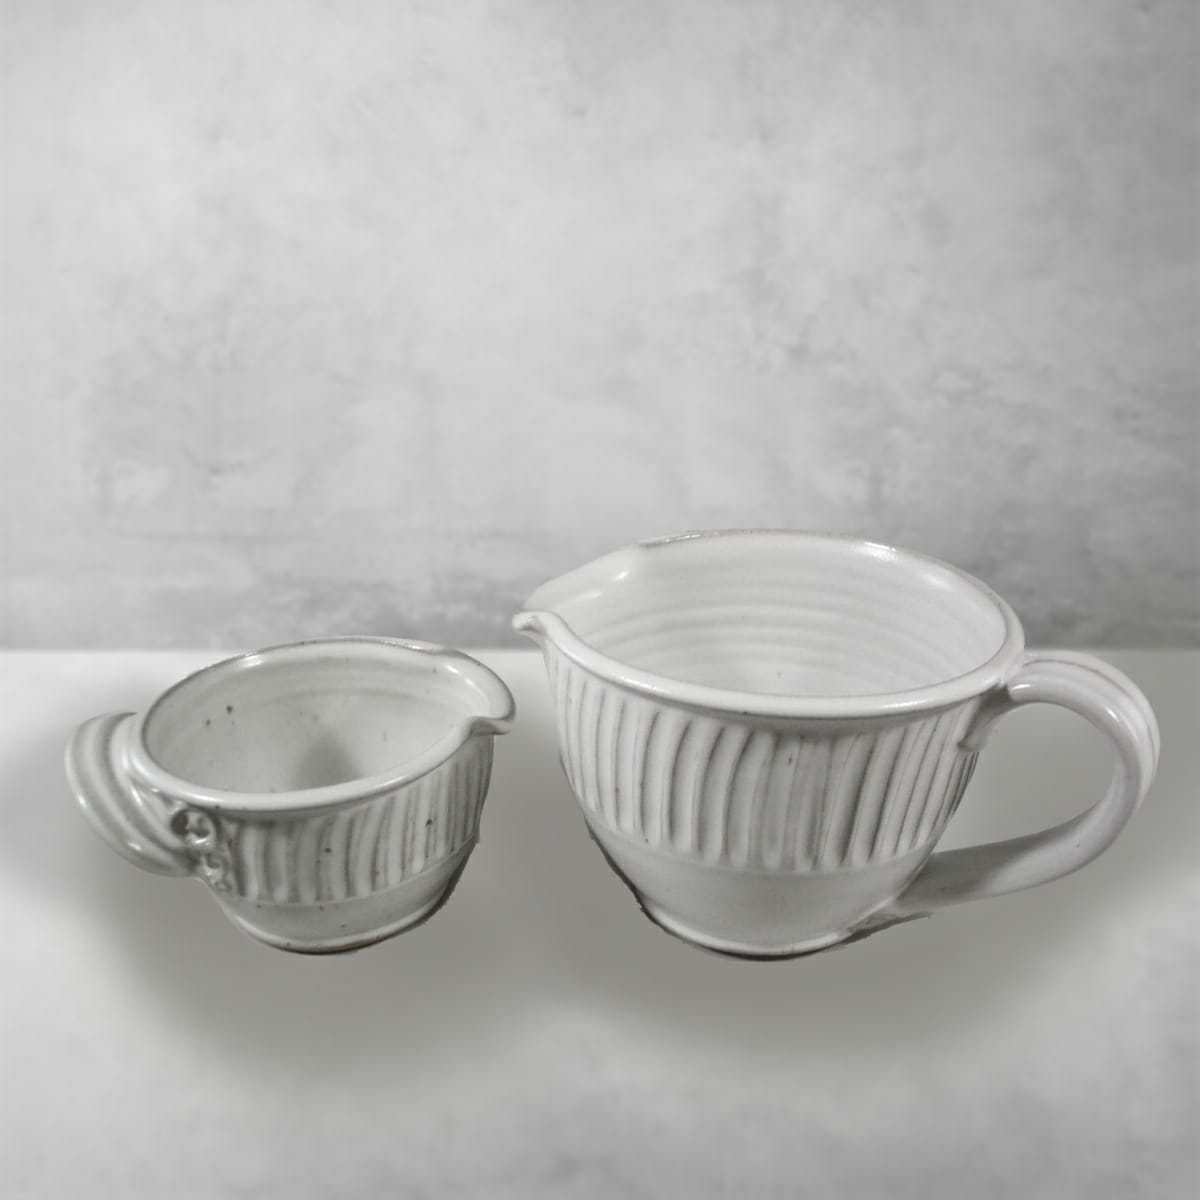 Spouted Bowls with Handles Fluted Design Small and Large Sizes, in White Glaze